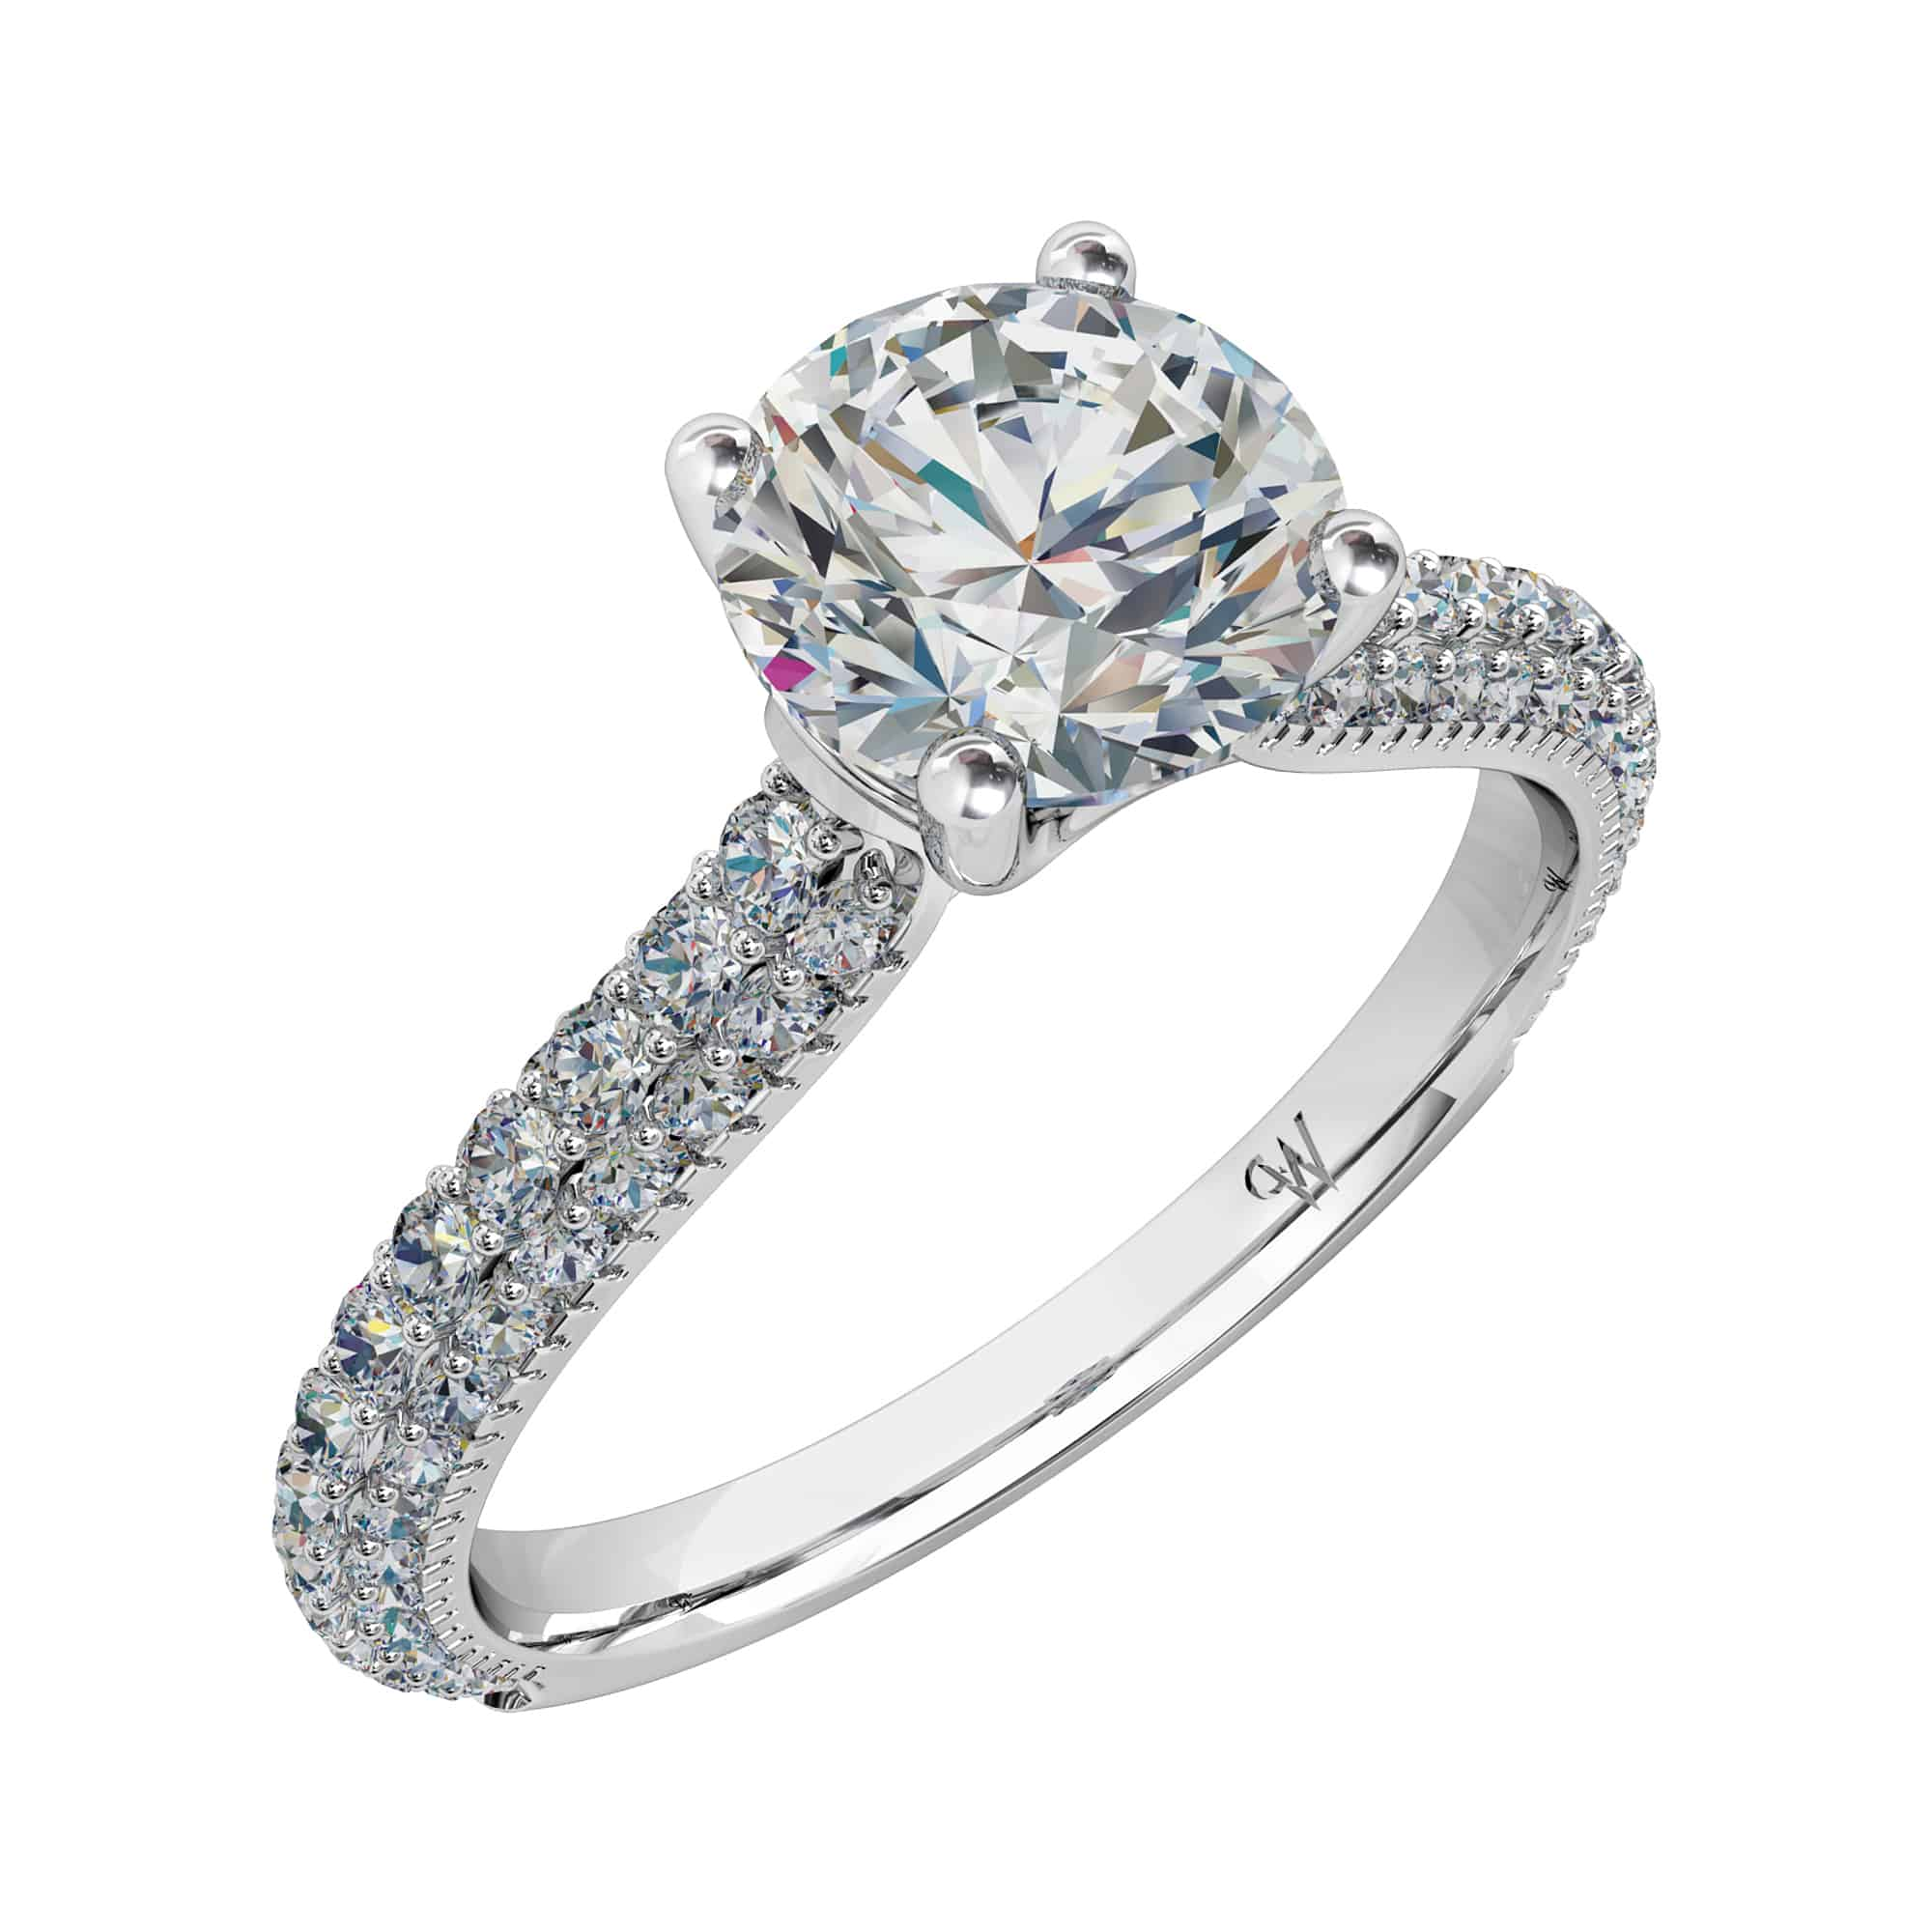 f solitaire winsor diamond bishop ring certificated brilliant round cut platinum